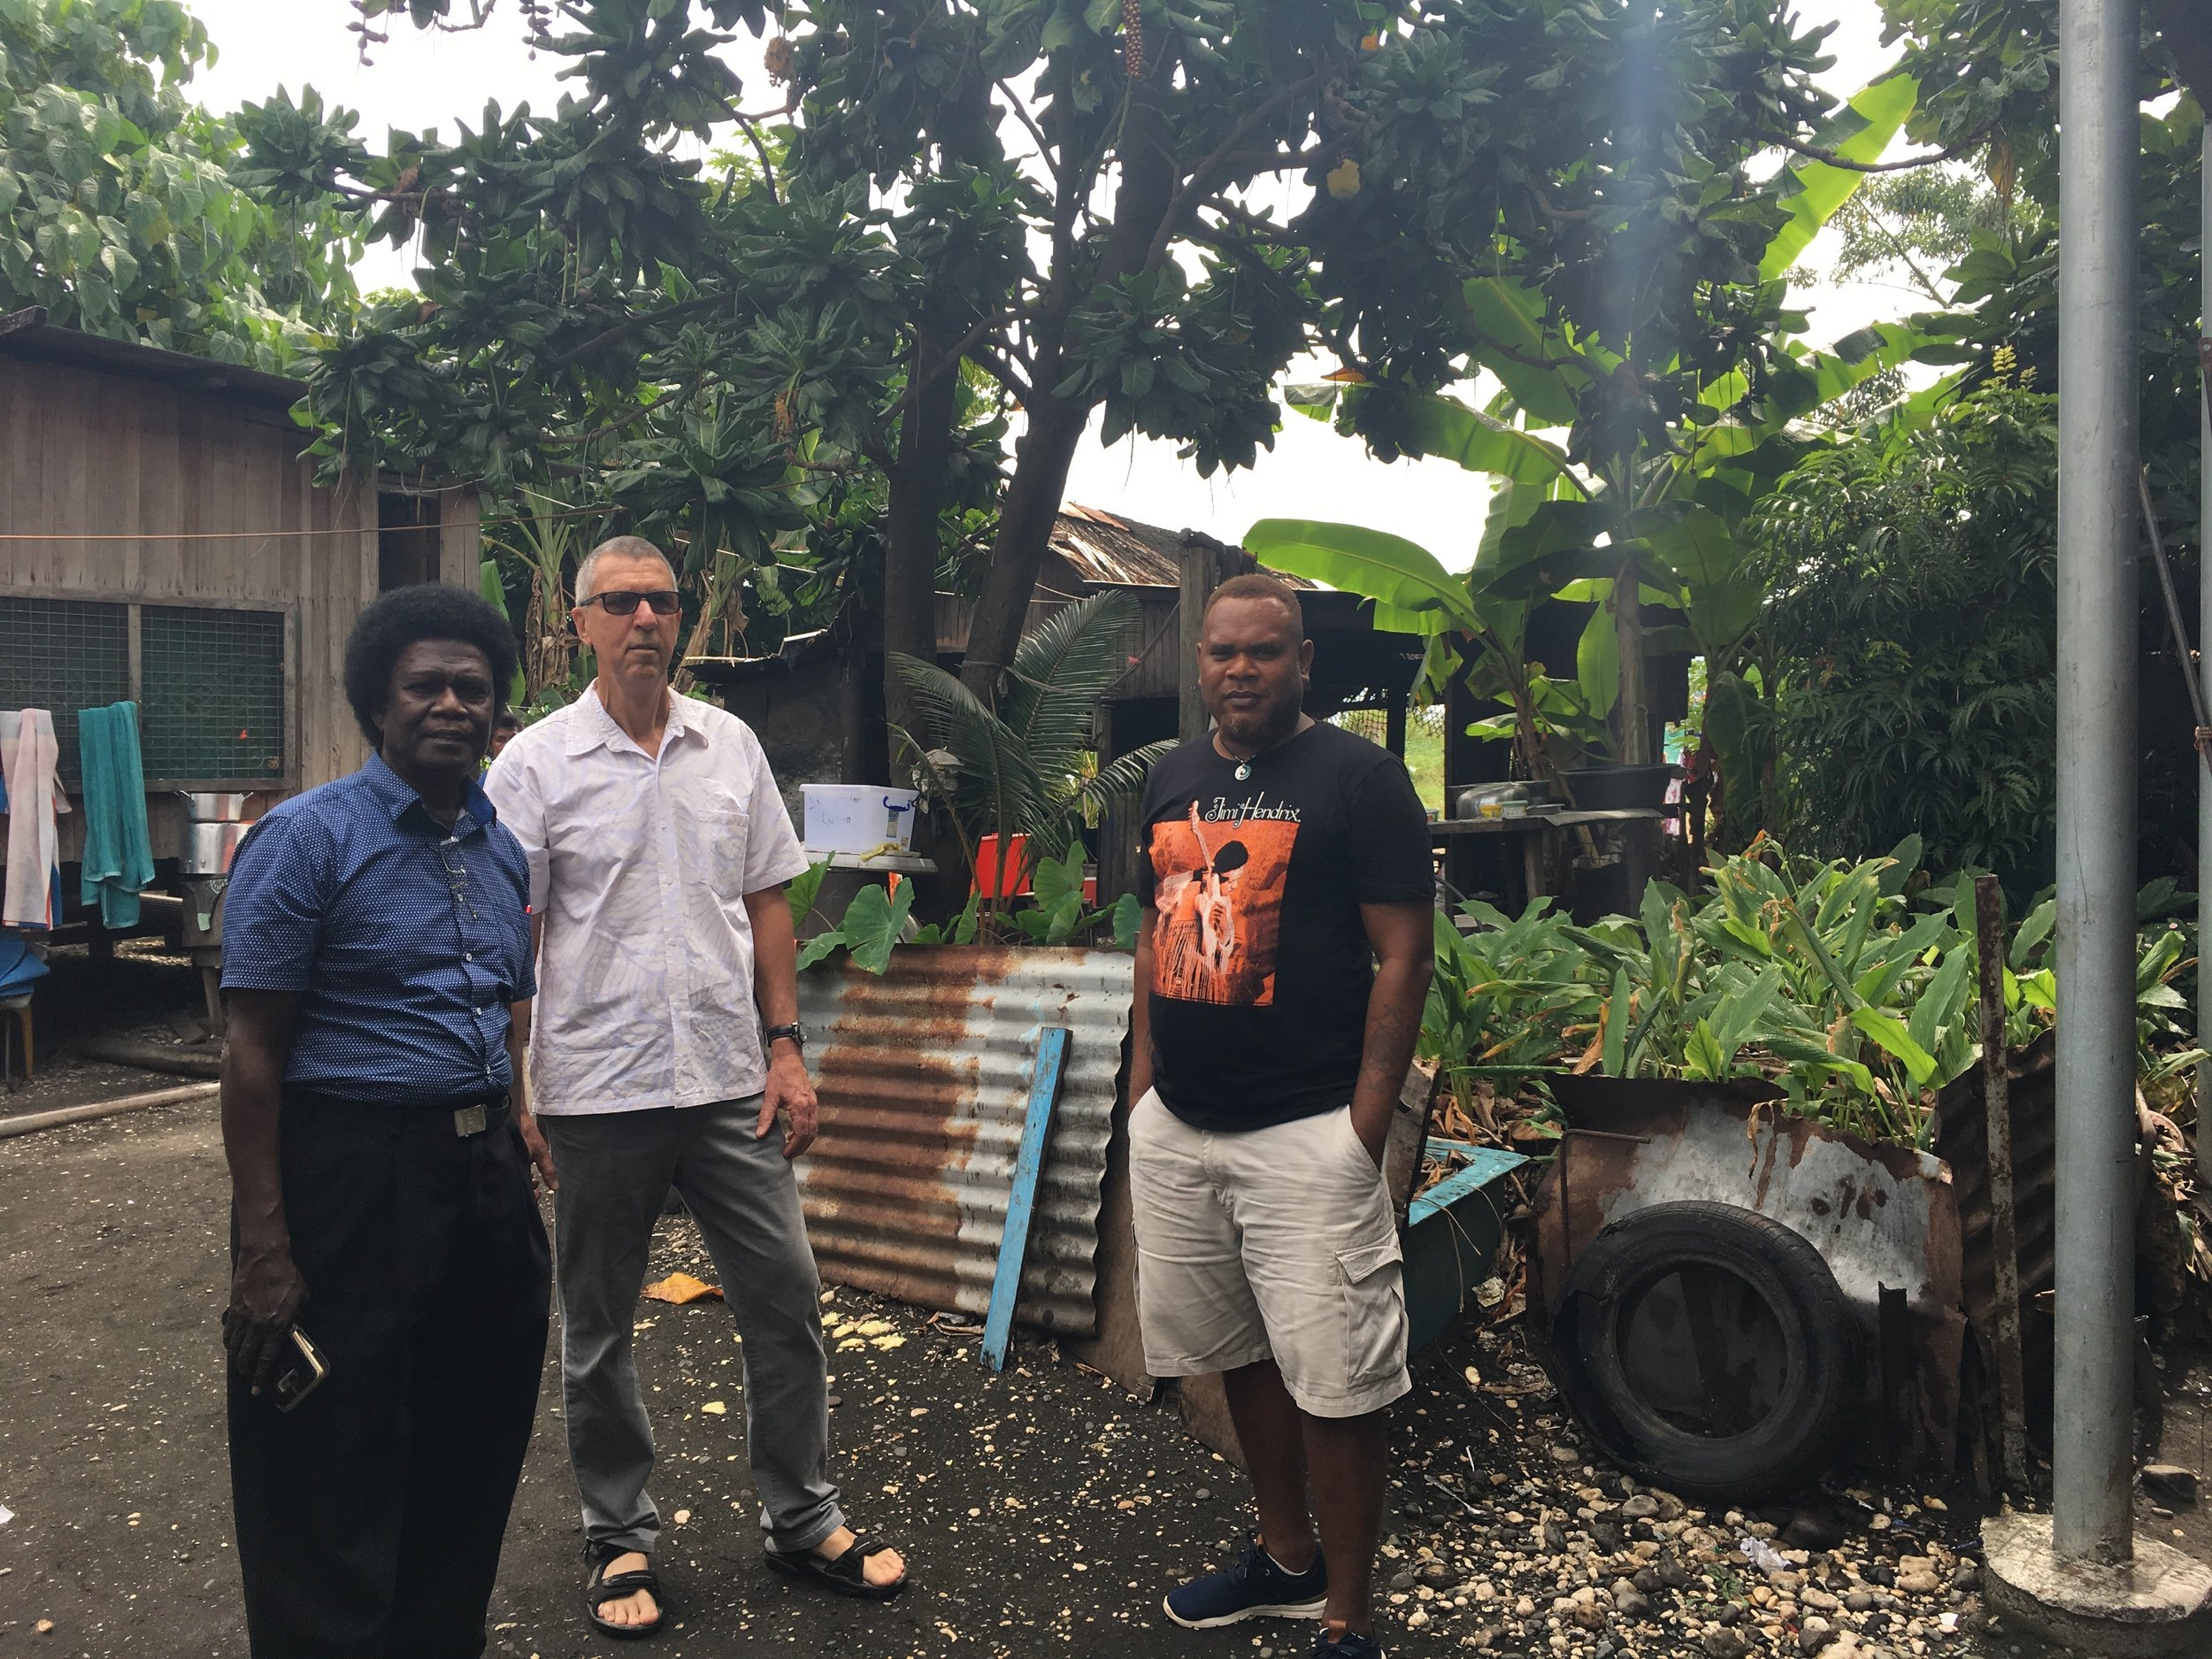 Charles Kelly, City Clerk Honiara, Steve Gawler, RD ICLEI and Nelson Anaia, Provincial Disaster Officer, visiting the Ontong Java fishing village - one of the most vulnerable settlements along the coast.